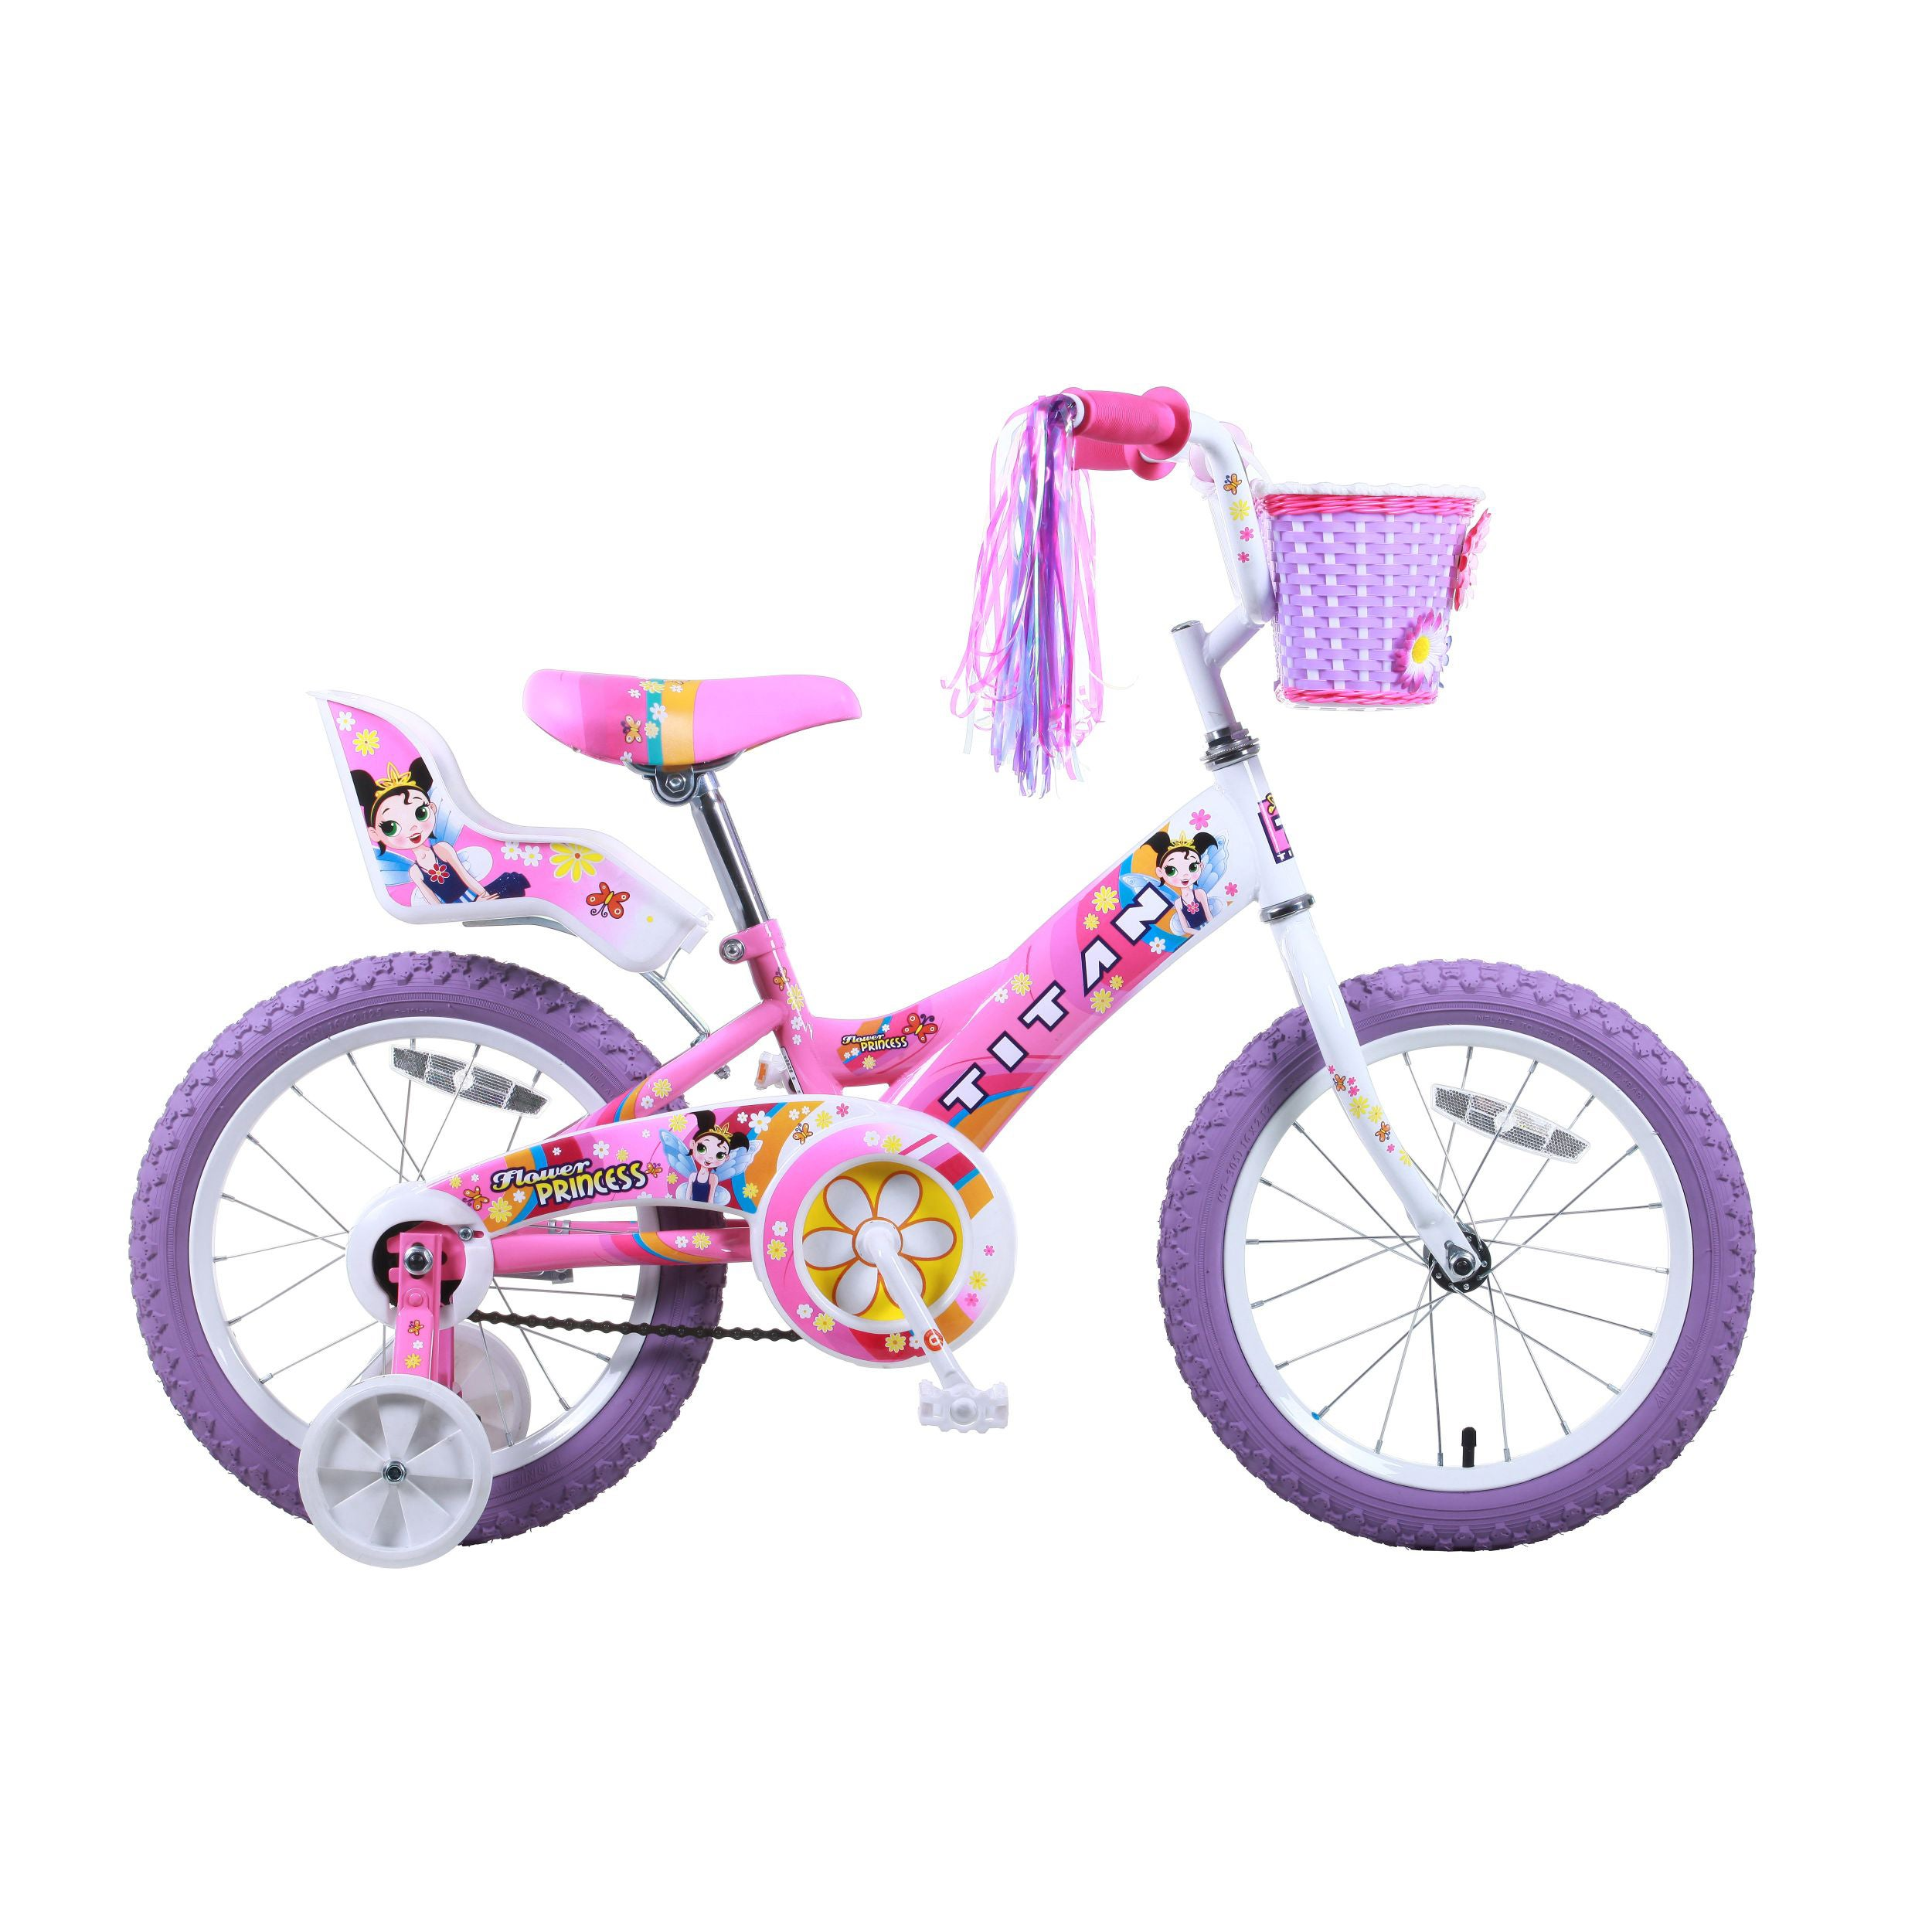 Titan Flower Princess 16-inch Pink BMX Bike (Flower Princ...